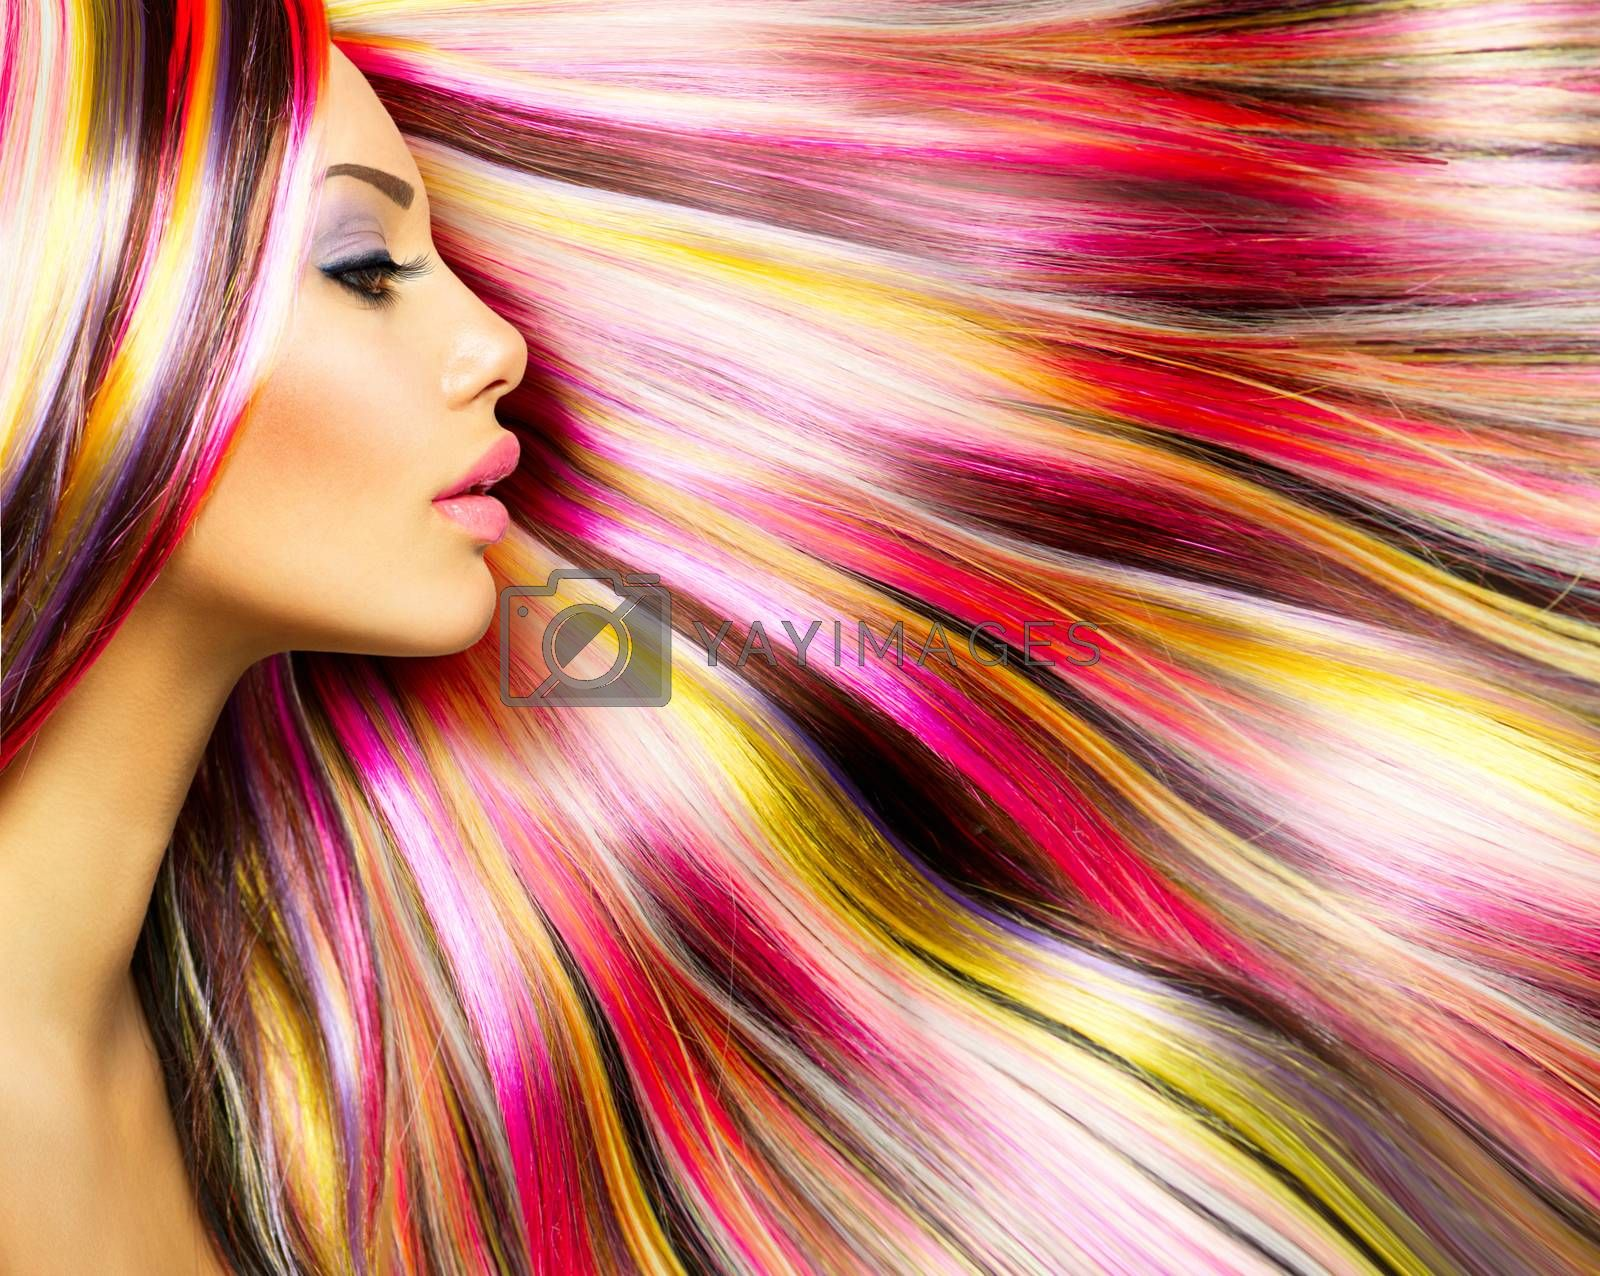 Beauty Fashion Model Girl with Colorful Dyed Hair